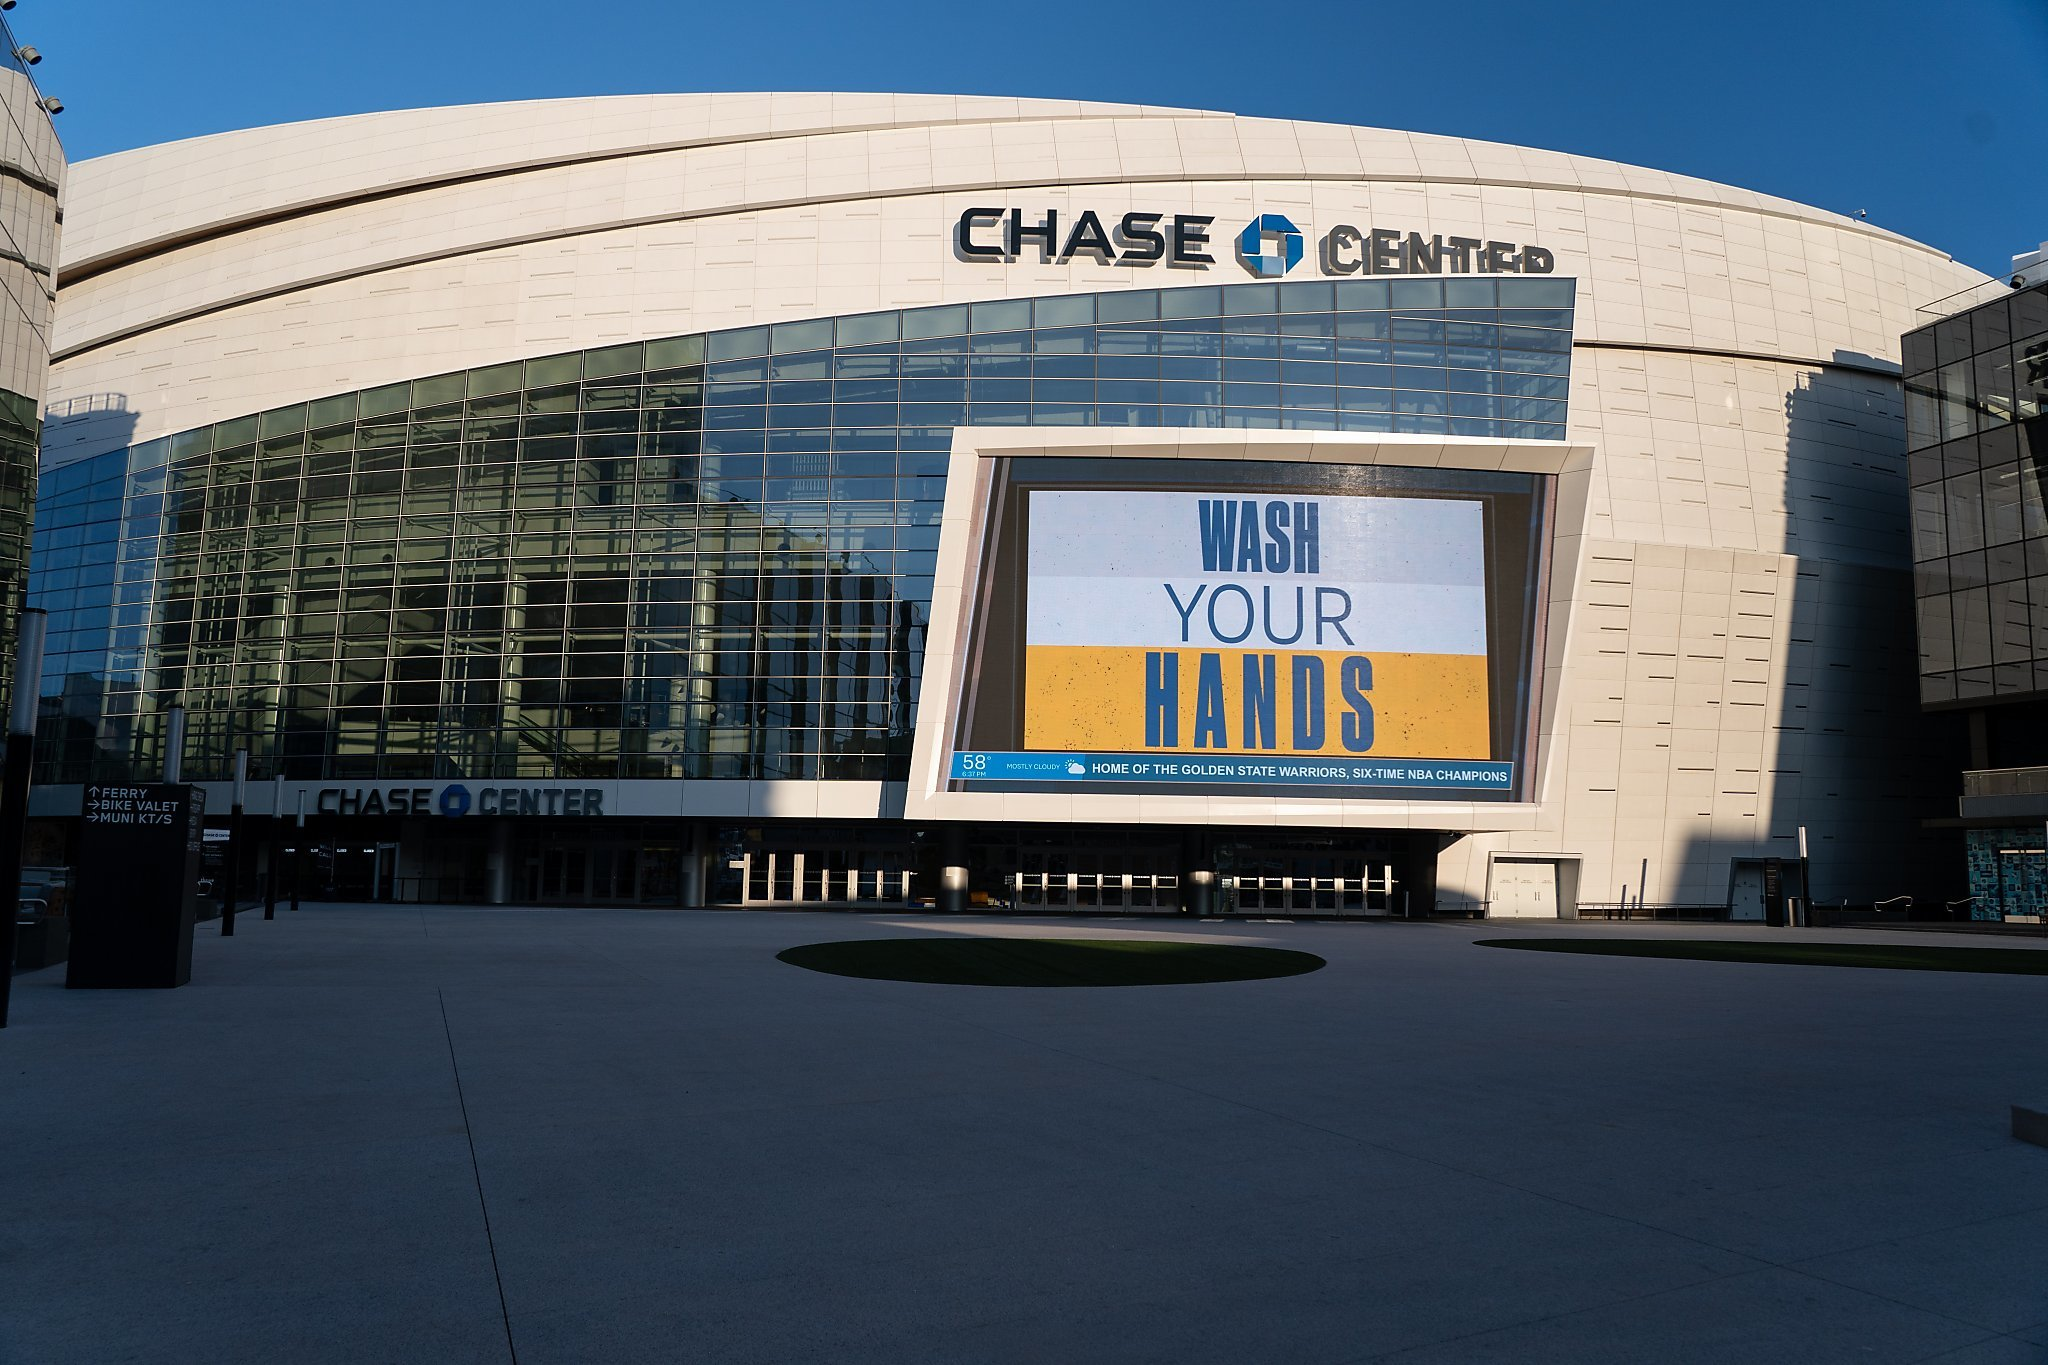 Warriors to convert Chase Center into site for election; A's pursue similar effort - SFChronicle.com 1